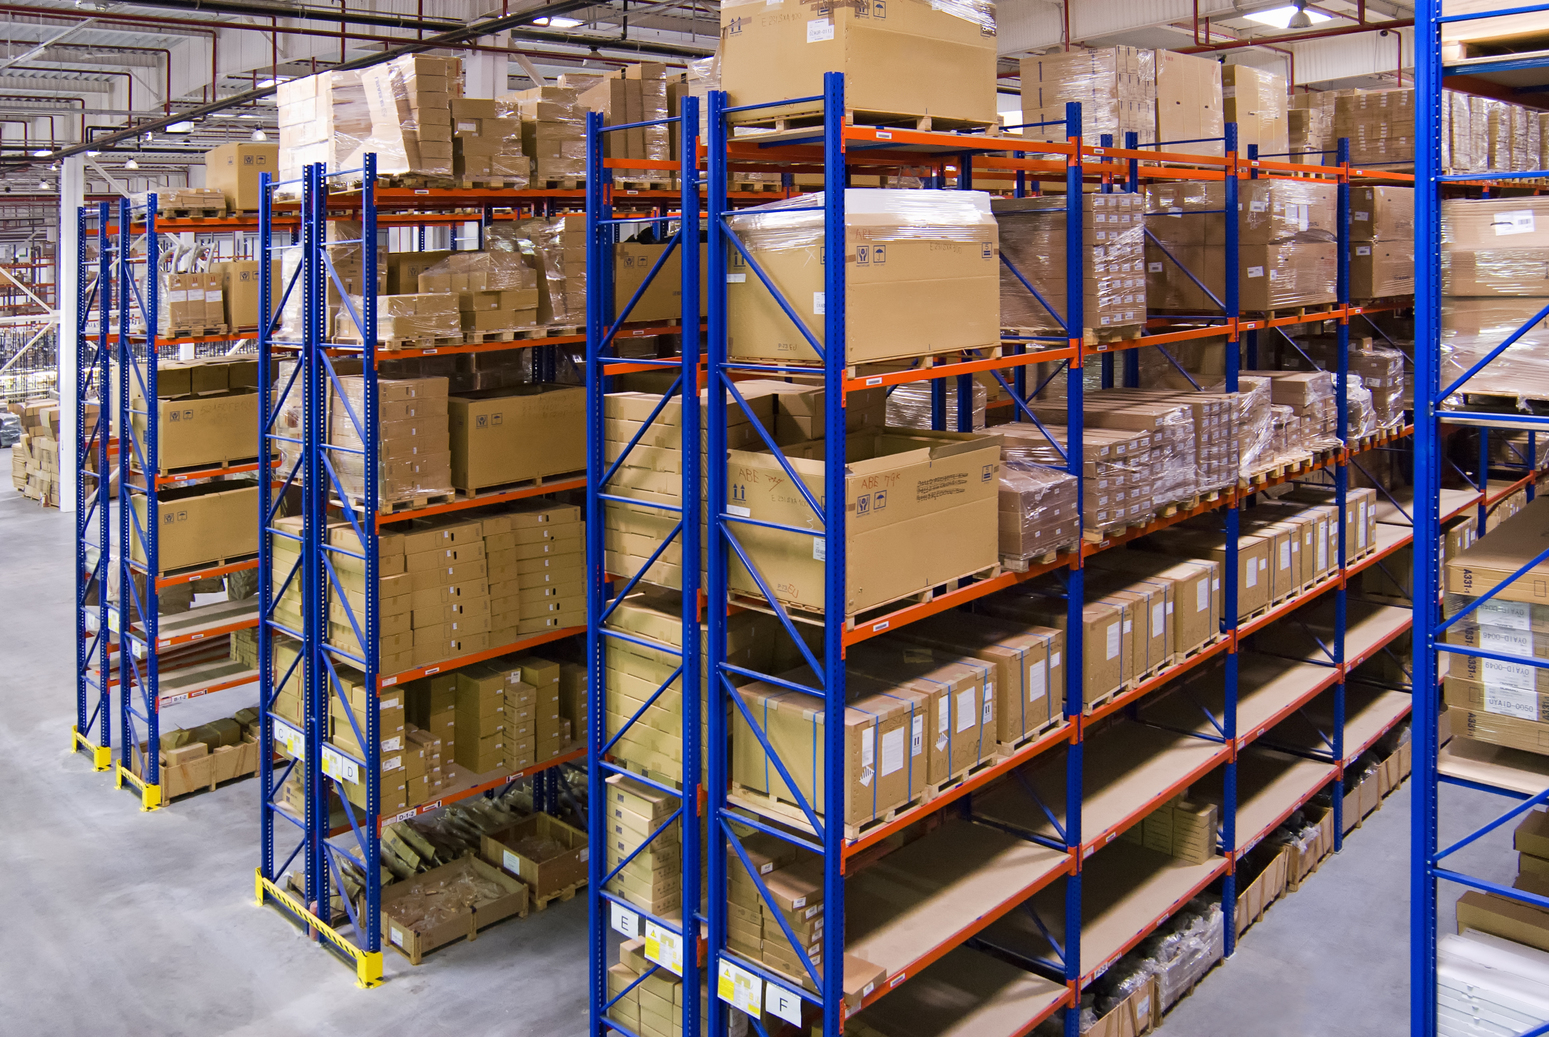 Pallet Racking: Safety Standards to Know